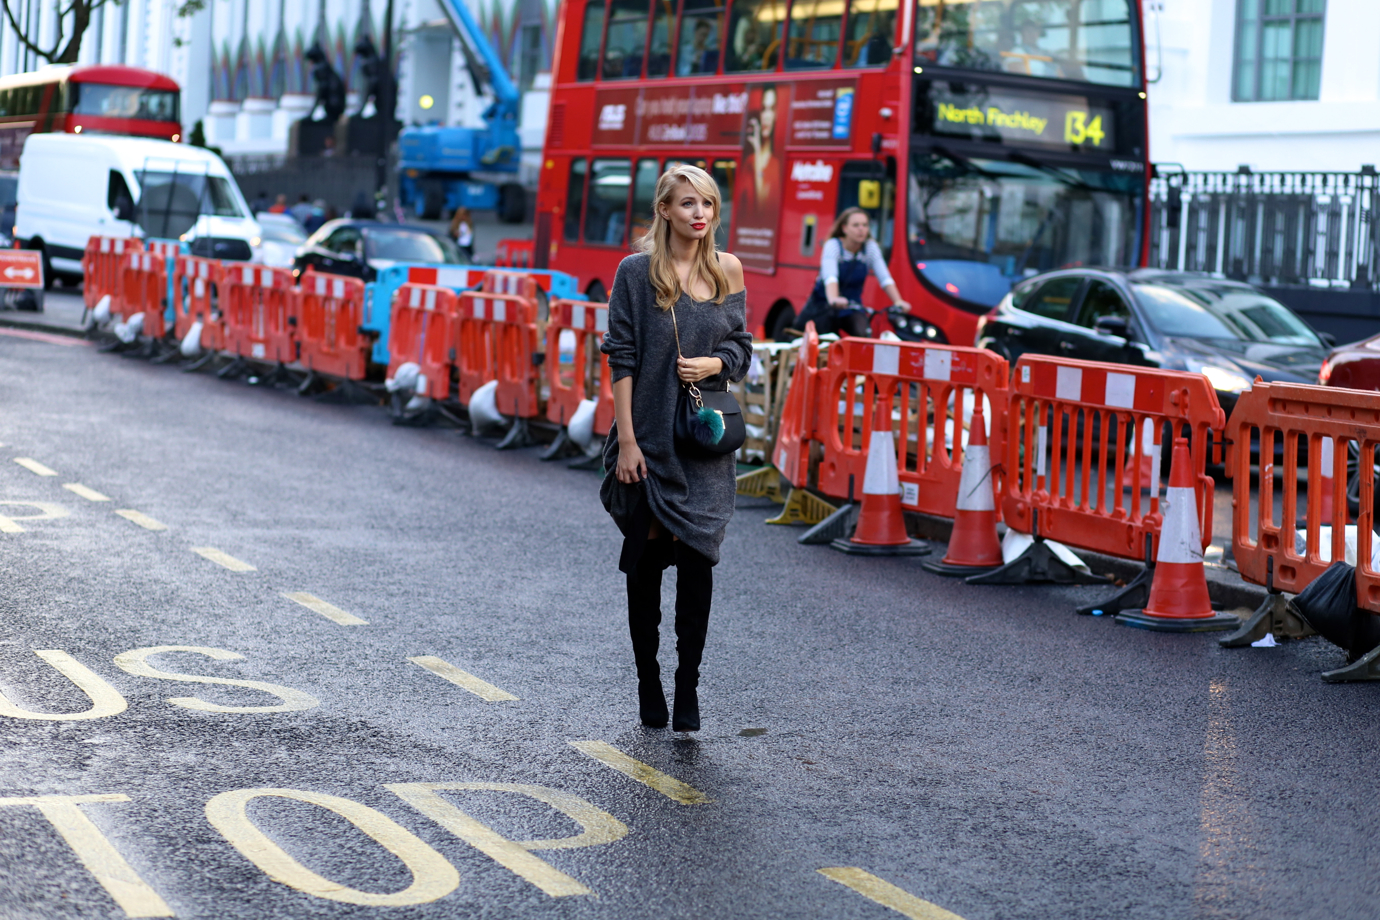 Streets_of_london_6